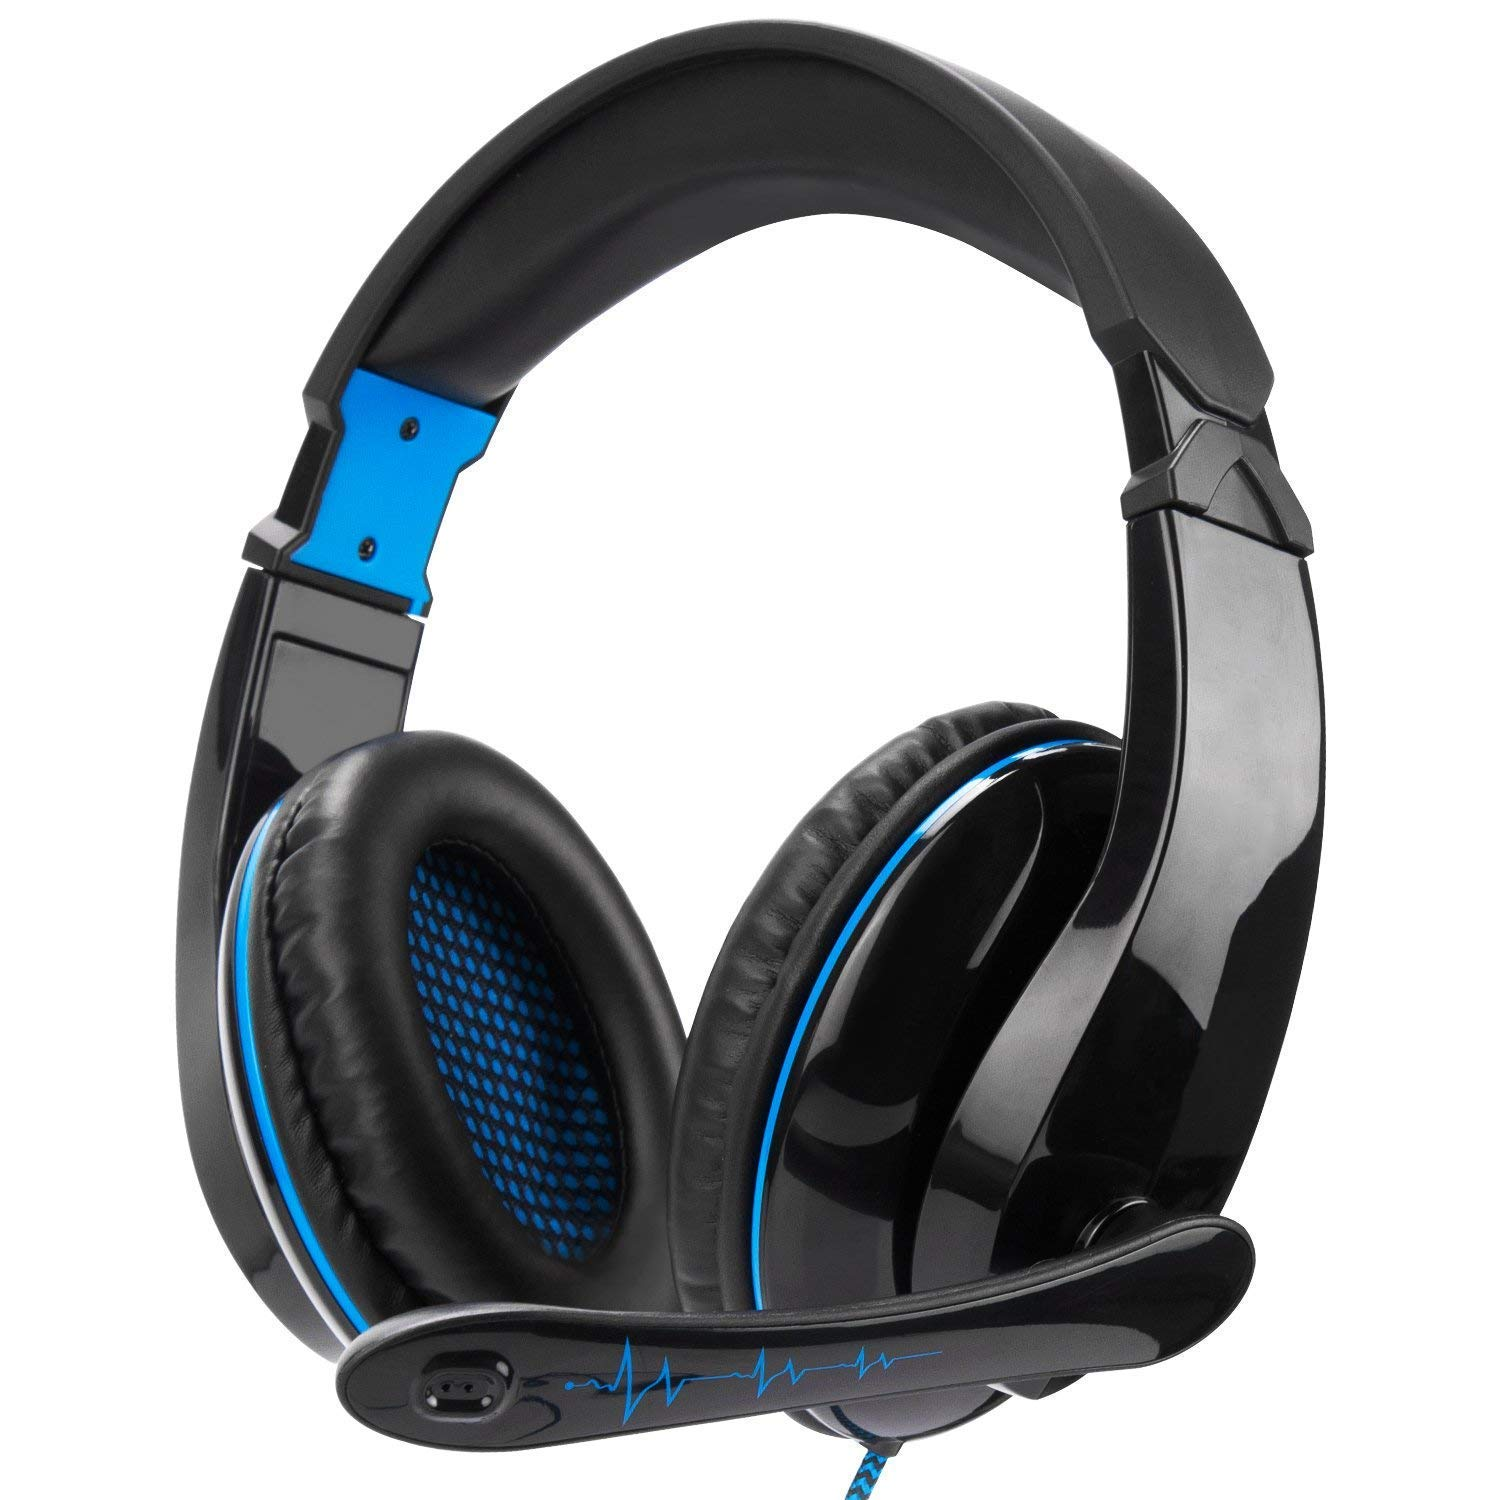 Xbox One Gaming Headset Stereo Over Ear Gaming Headset with Mic Noise Cancelling Volume Control for Xbox One PC Mac PS4 Nintendo Phone Black Blue